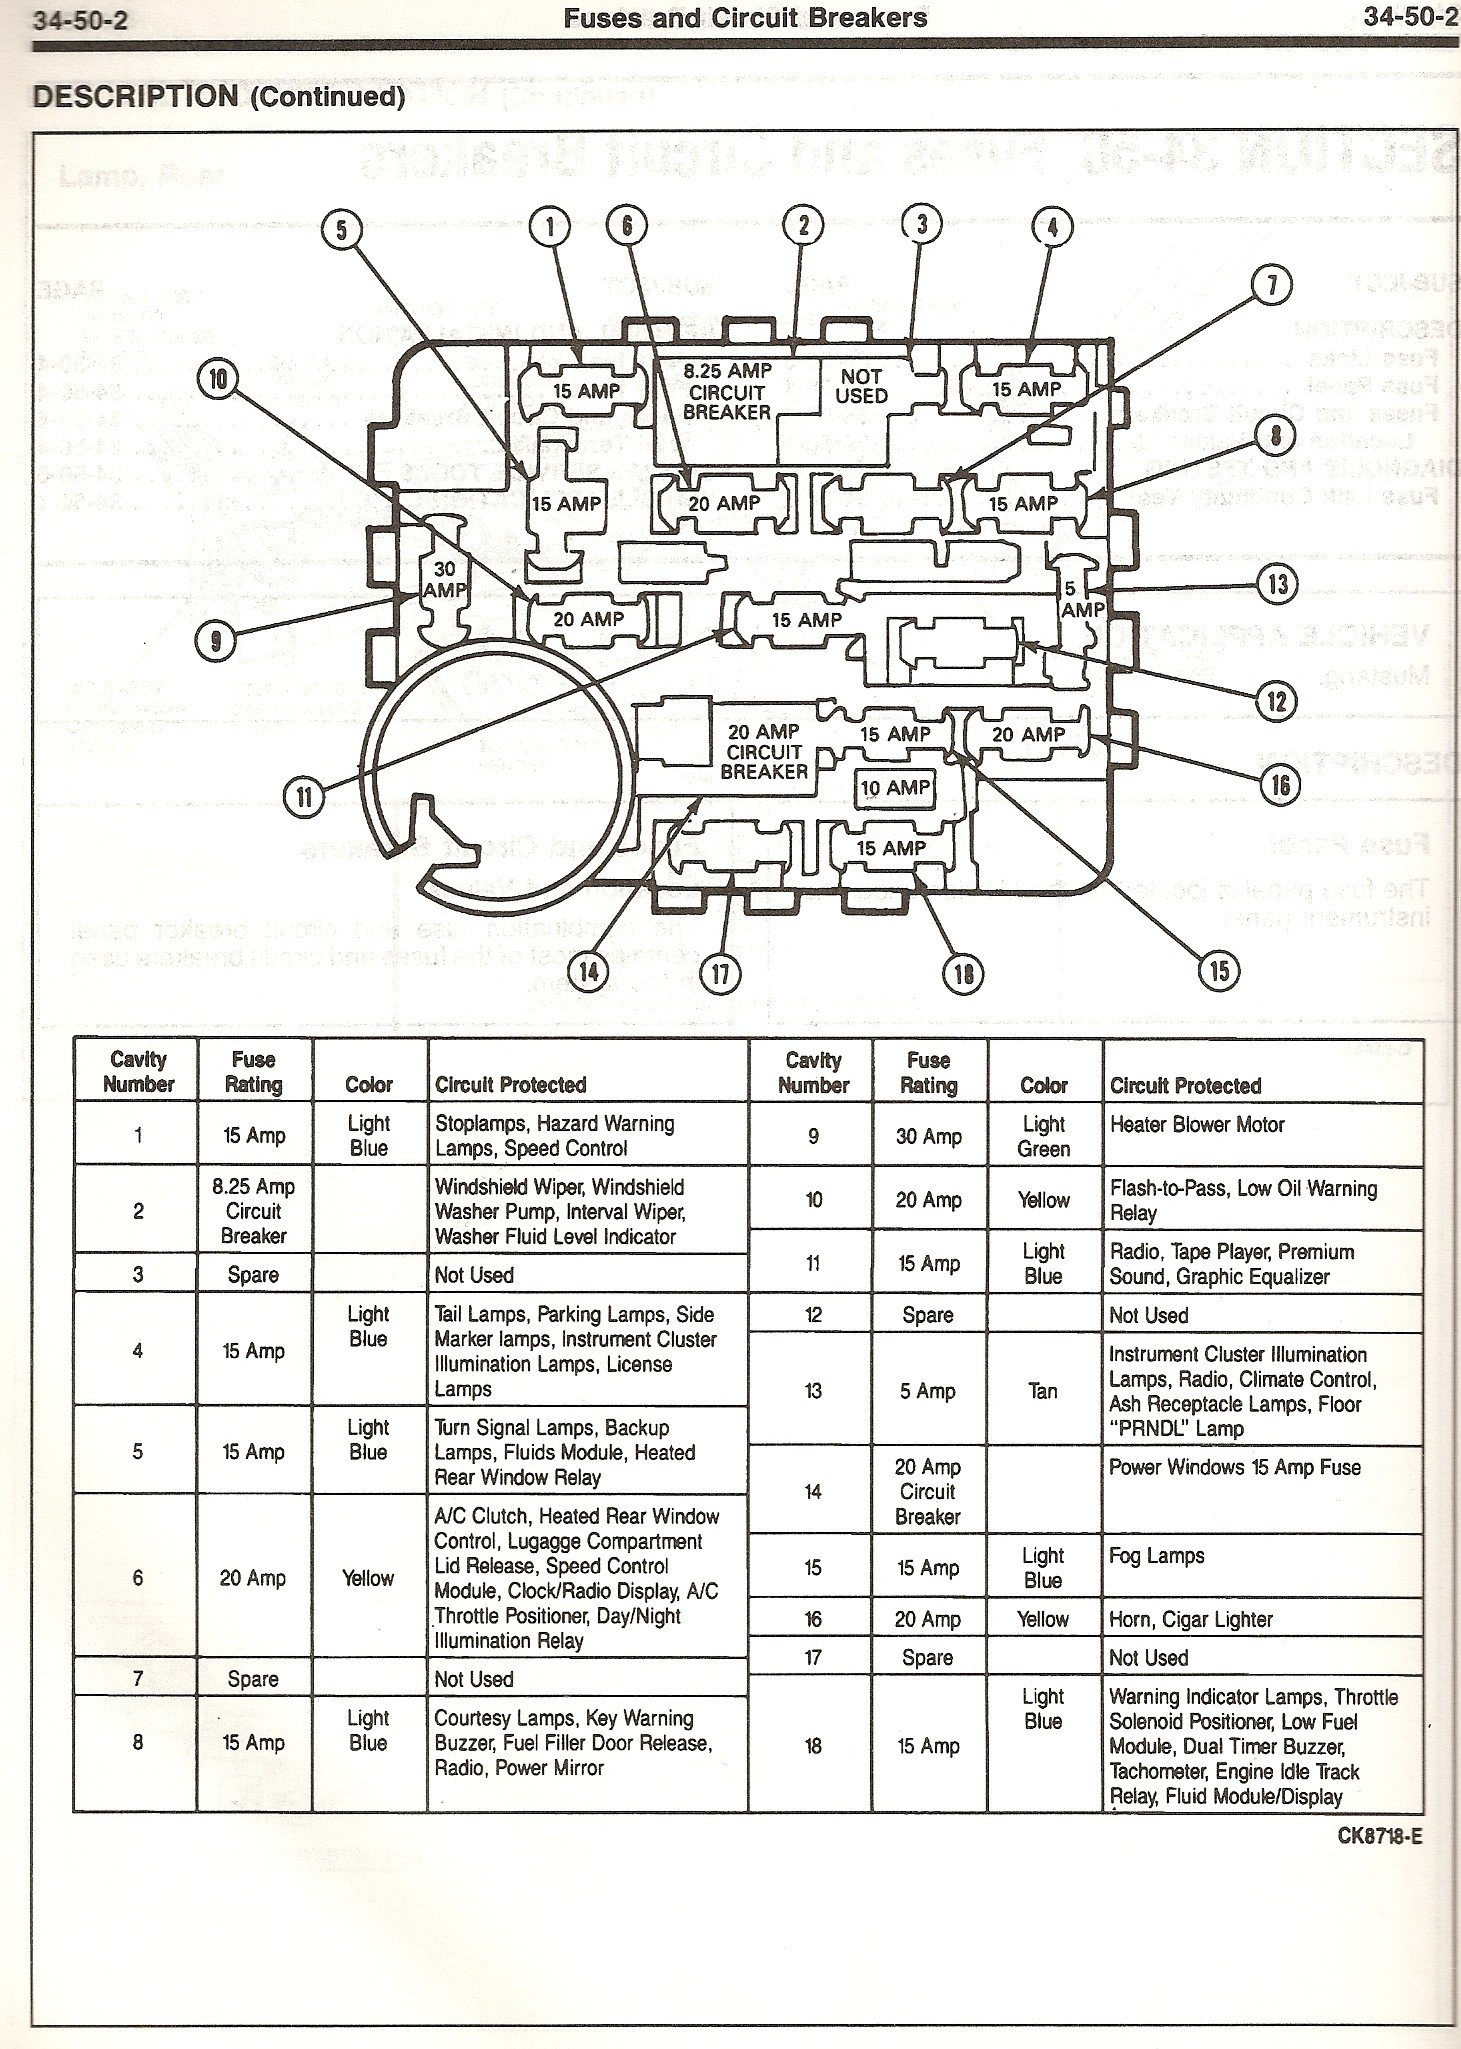 2011 Ford F-250 Thru 550 Super Duty Wiring Diagram Manual